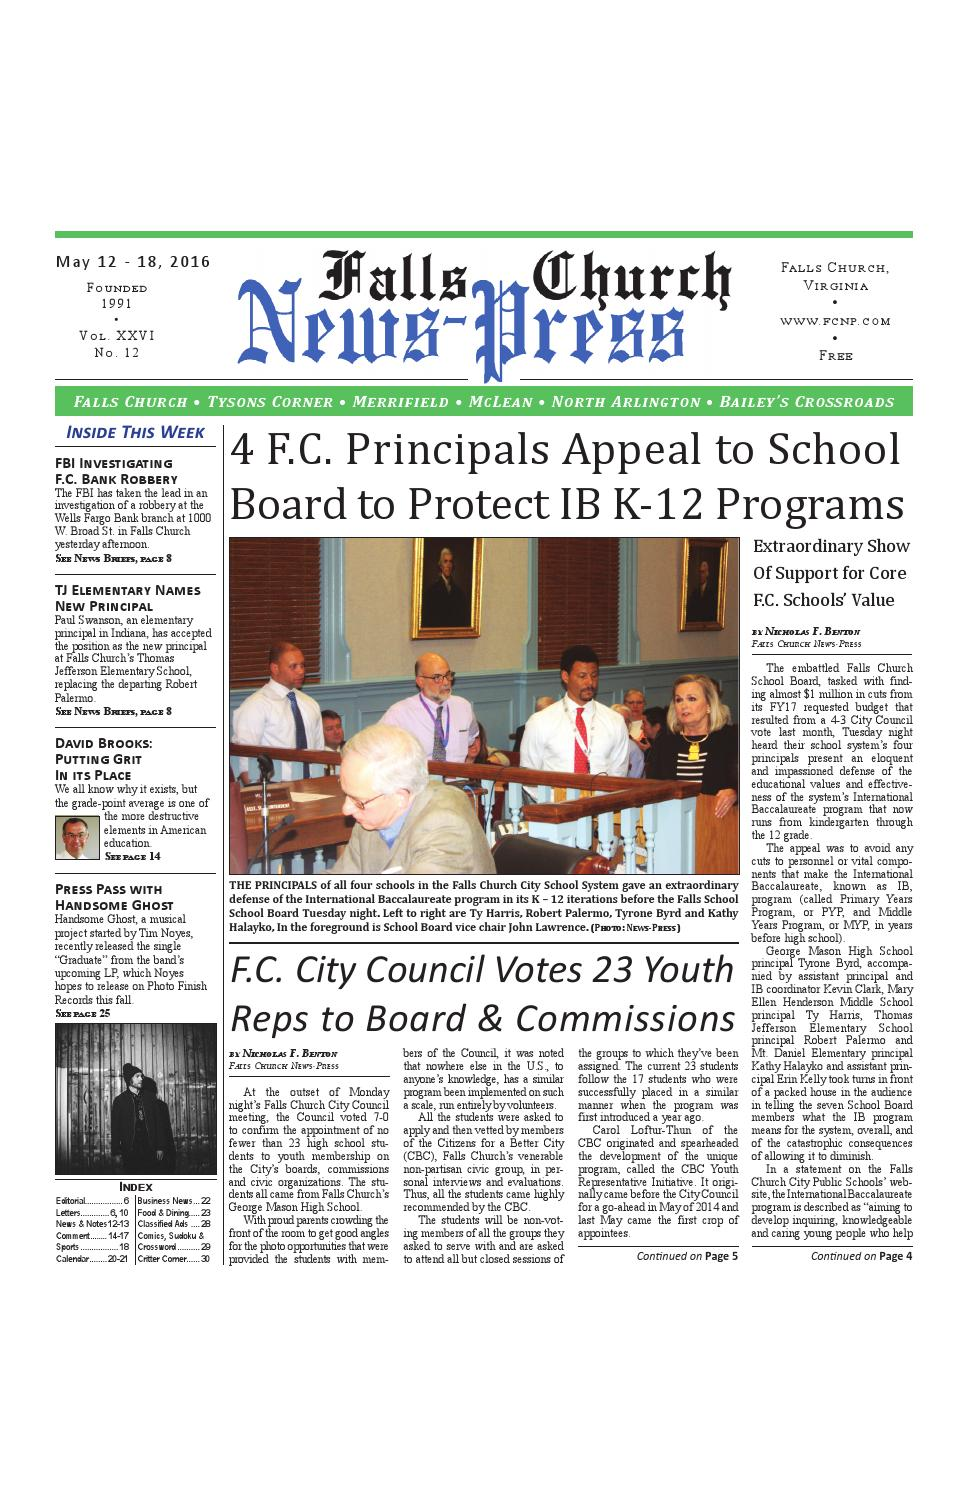 Putting Grit In Its Place >> 5 12 2016 By Falls Church News Press Issuu